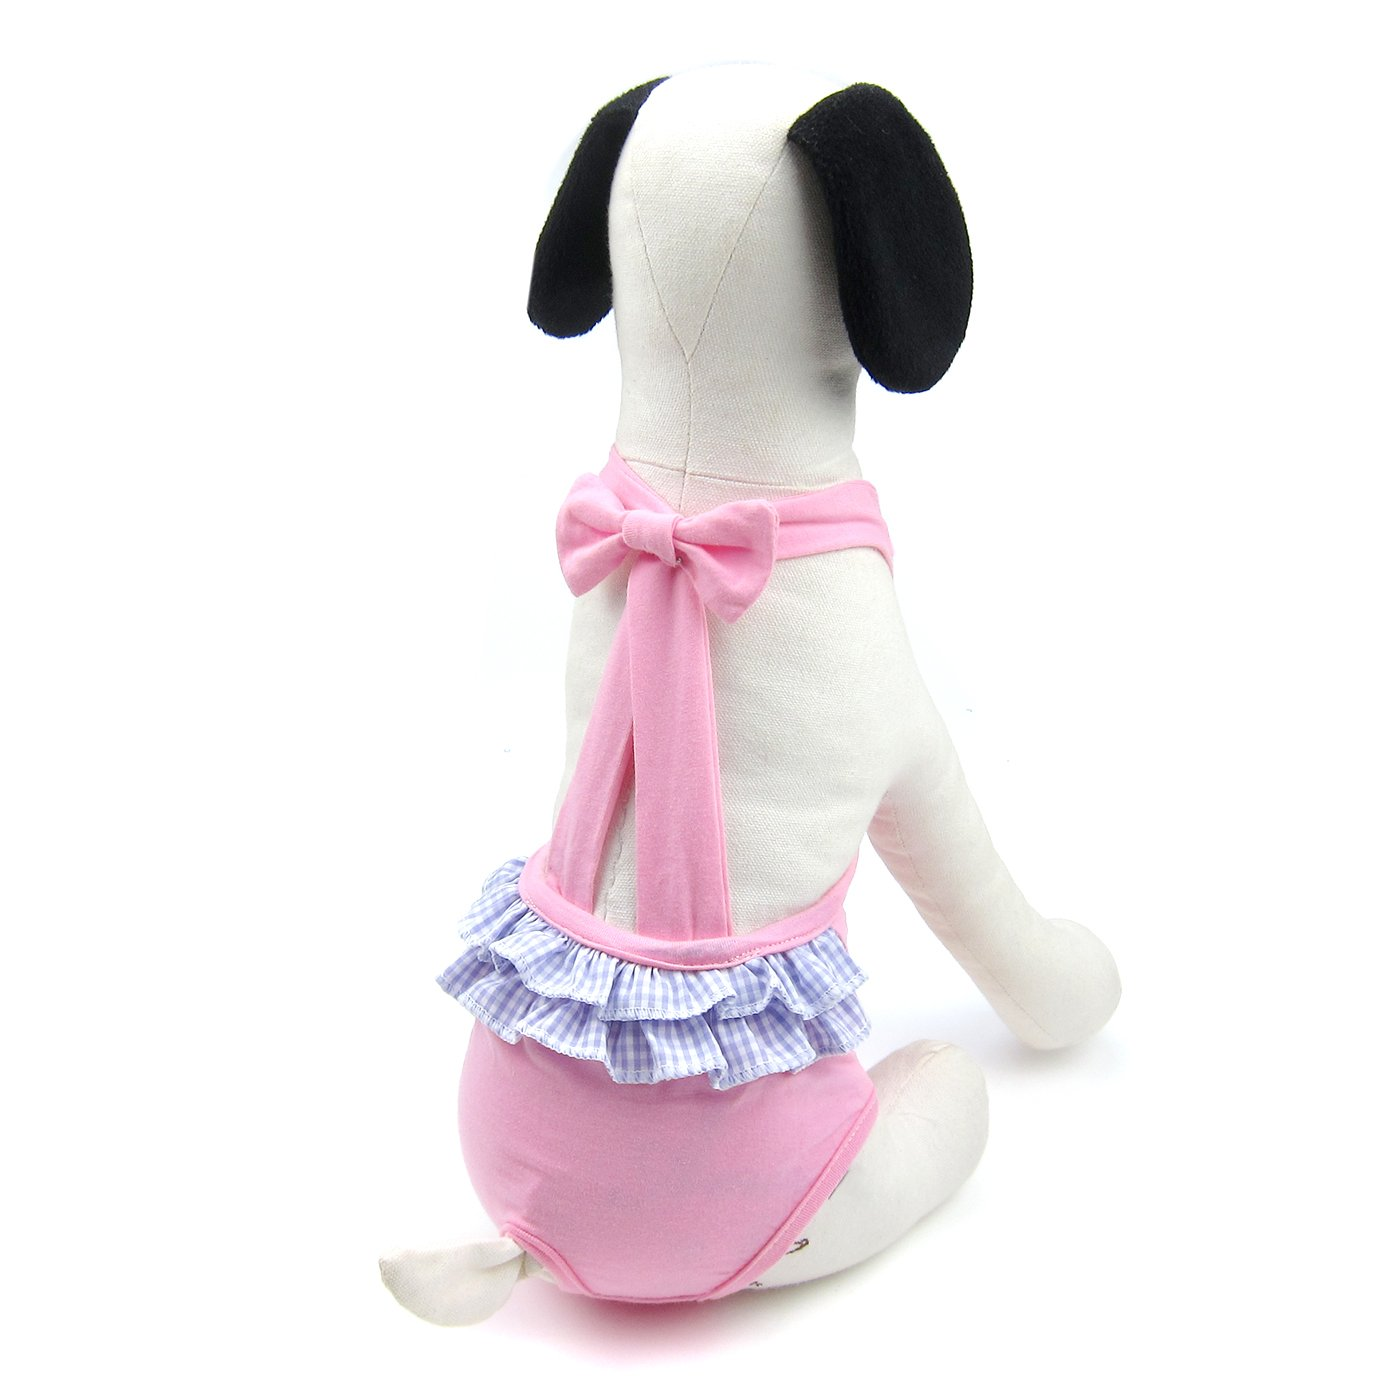 Alfie Pet by Petoga Couture - Alvina Diaper Dog Sanitary Pantie with Suspender for Girl Dogs - Color: Pink, Size: Medium